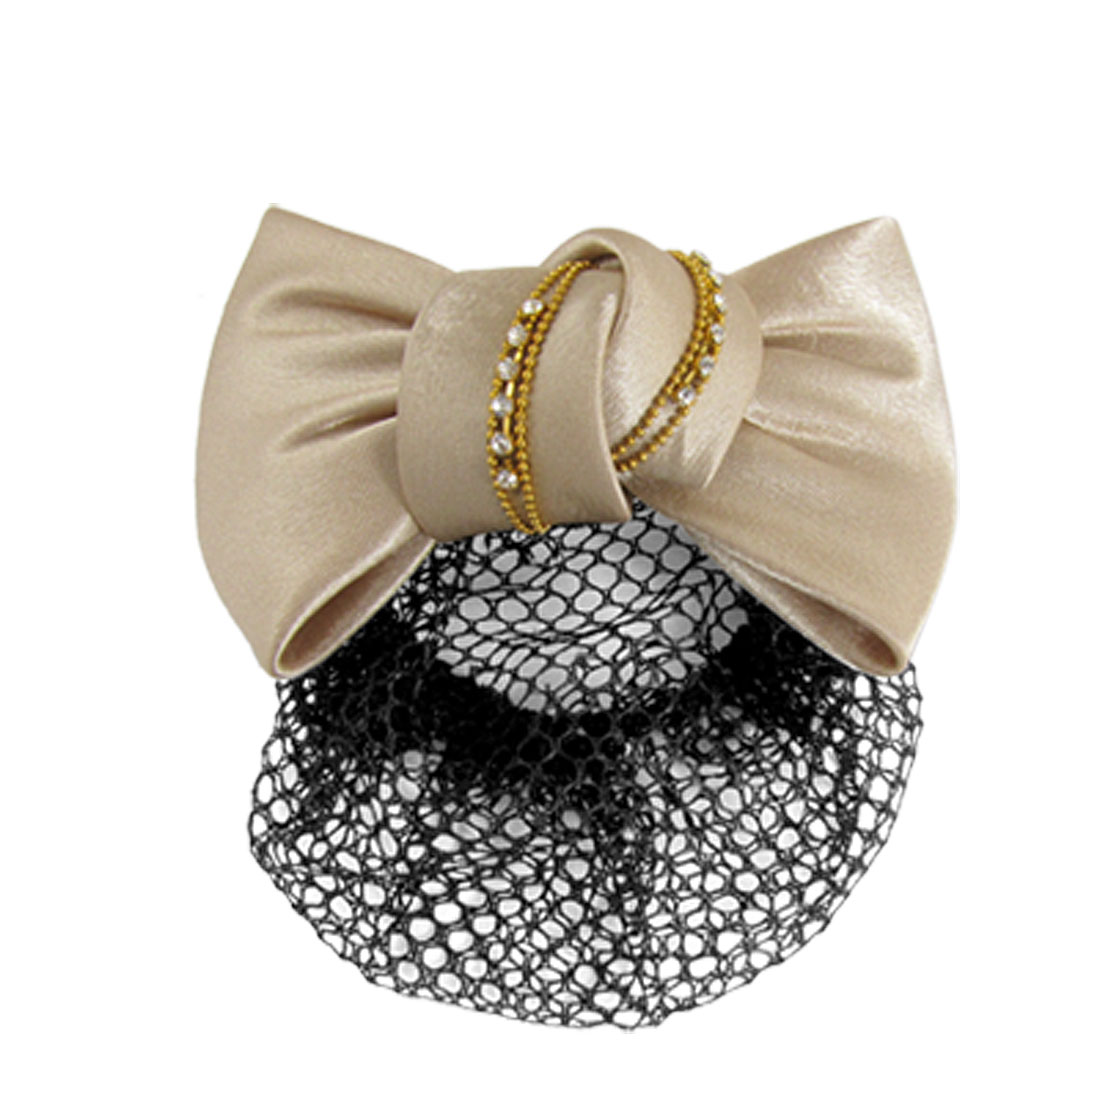 Crystal Inlaid Apricot Bowknot Decor Metal Hair Clip for Women